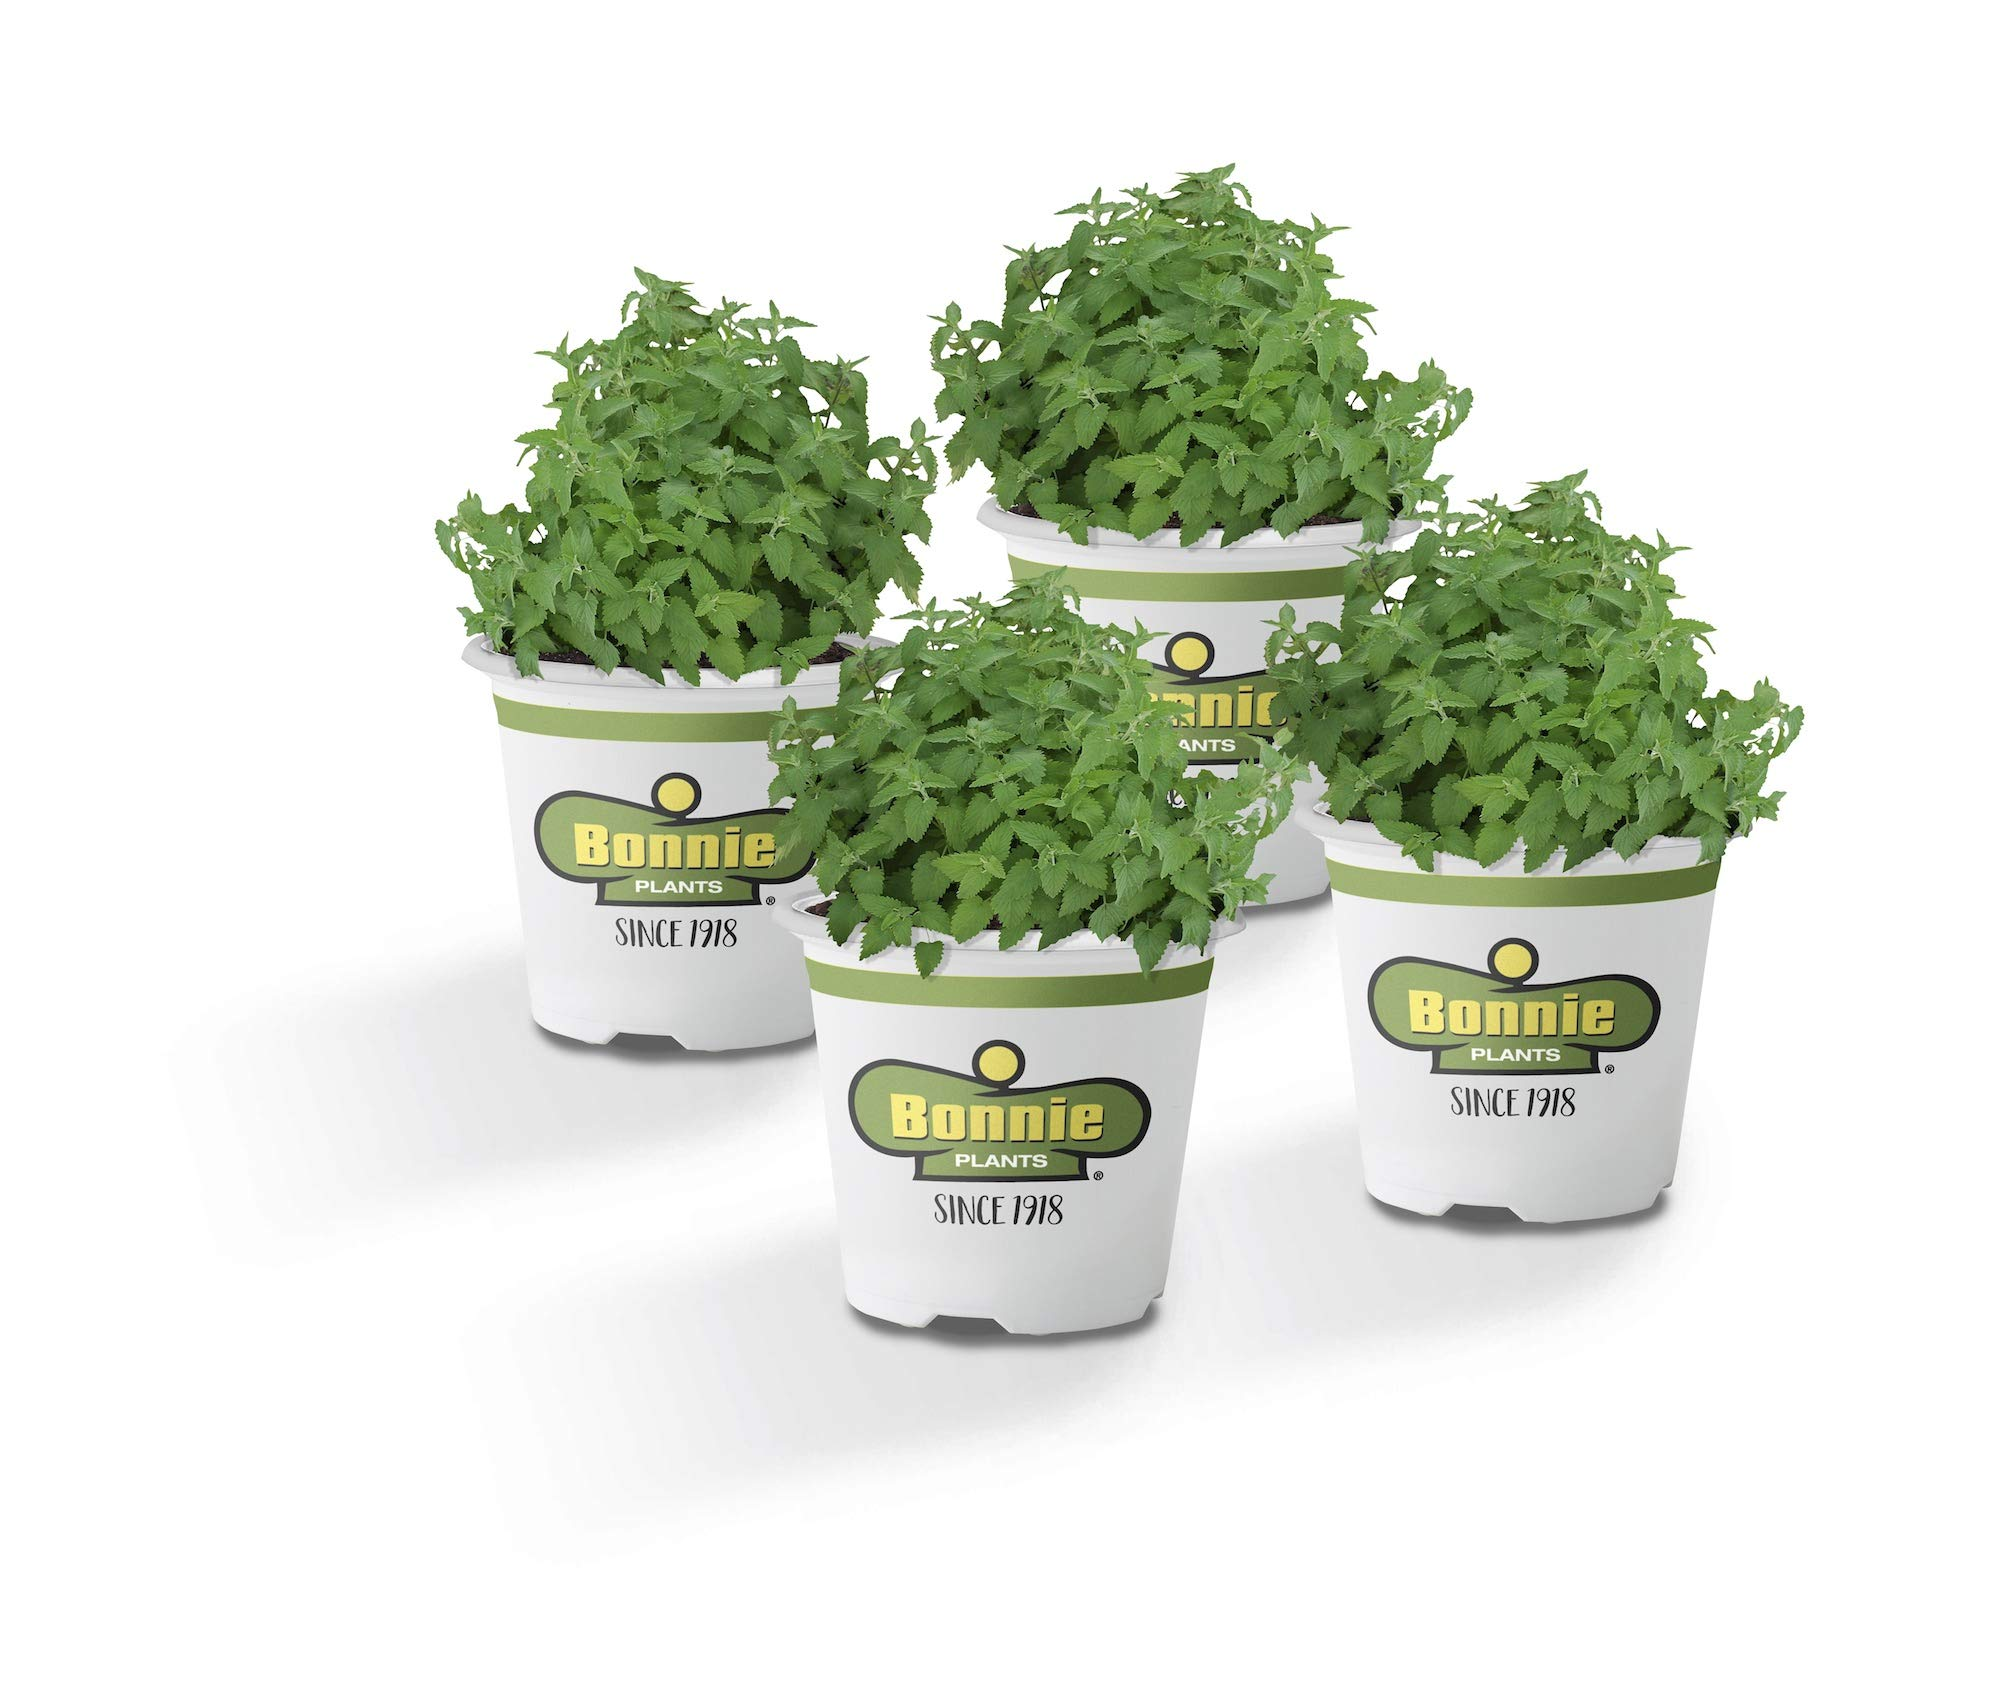 Bonnie Plants Catnip Live Herb Plants - 4 Pack | Pet Friendly | Grows Great In Containers | Fresh For Cats & Dries For Cat Sachets